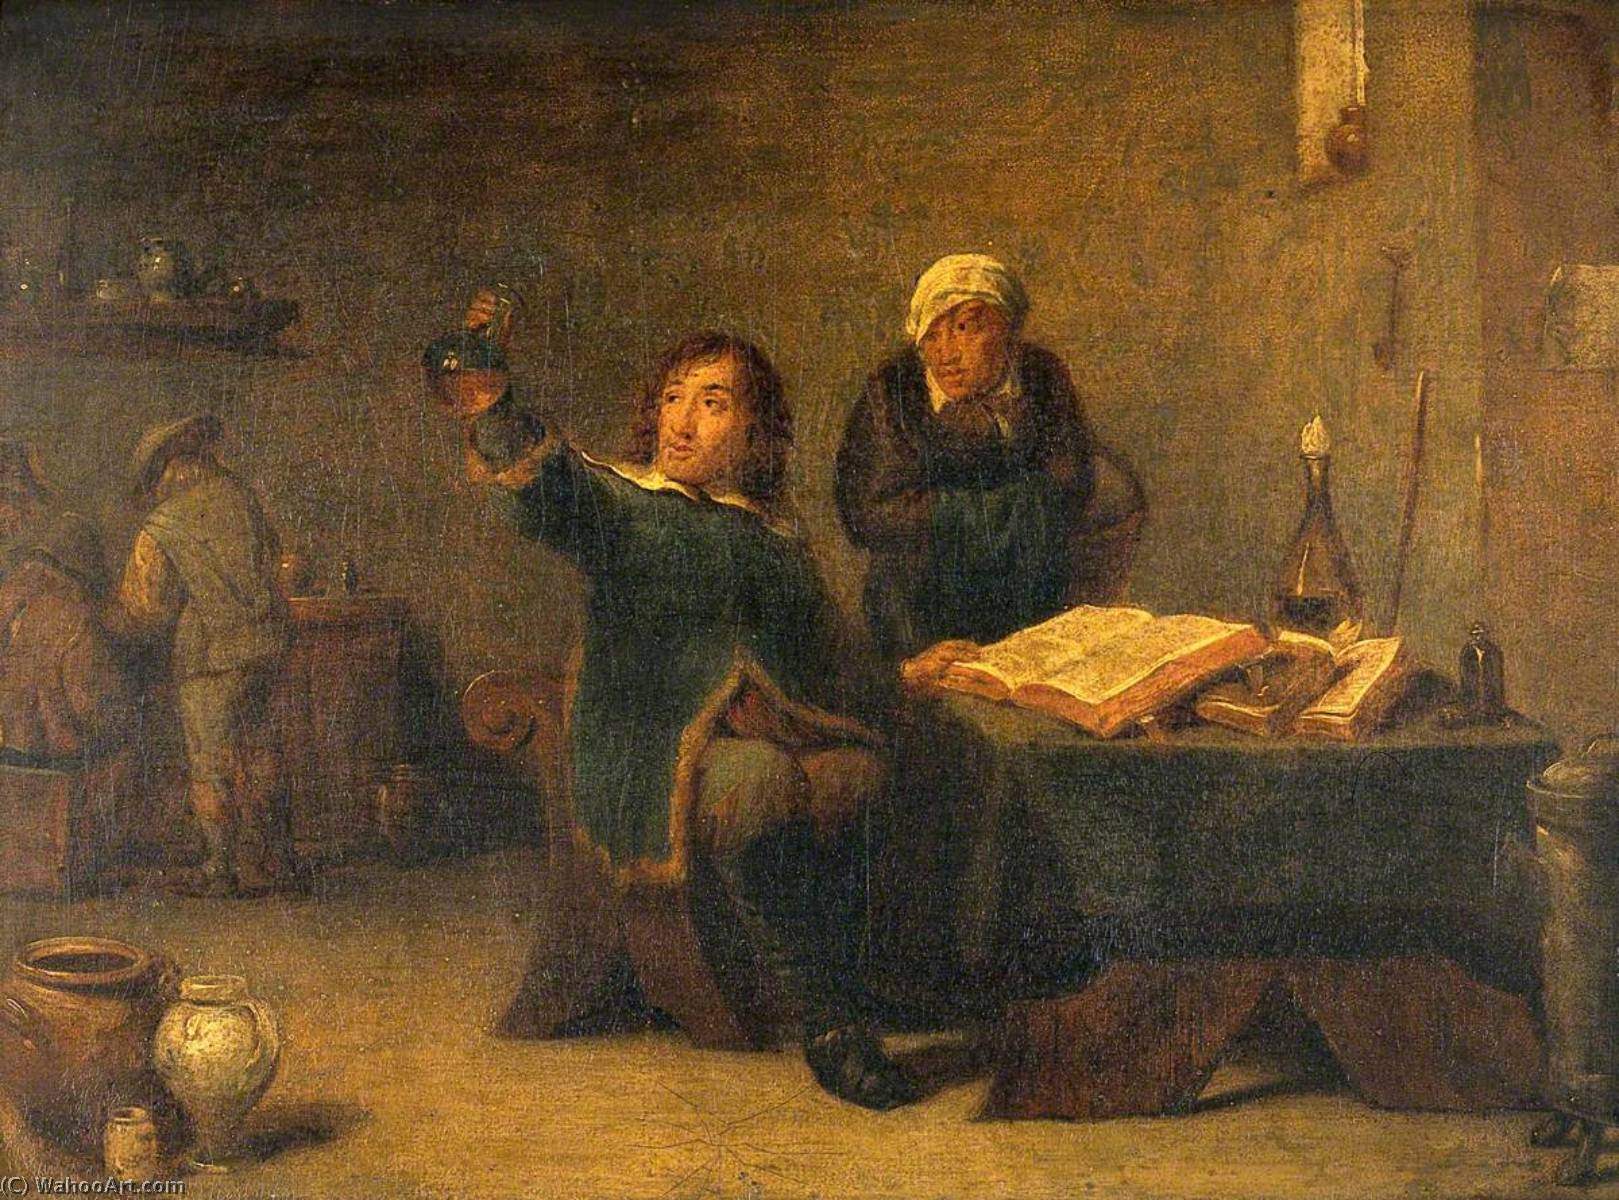 A Medical Practitioner Examining a Urine Flask by David Teniers Ii Le Jeune (1610-1690) | Art Reproductions David Teniers Ii Le Jeune | WahooArt.com